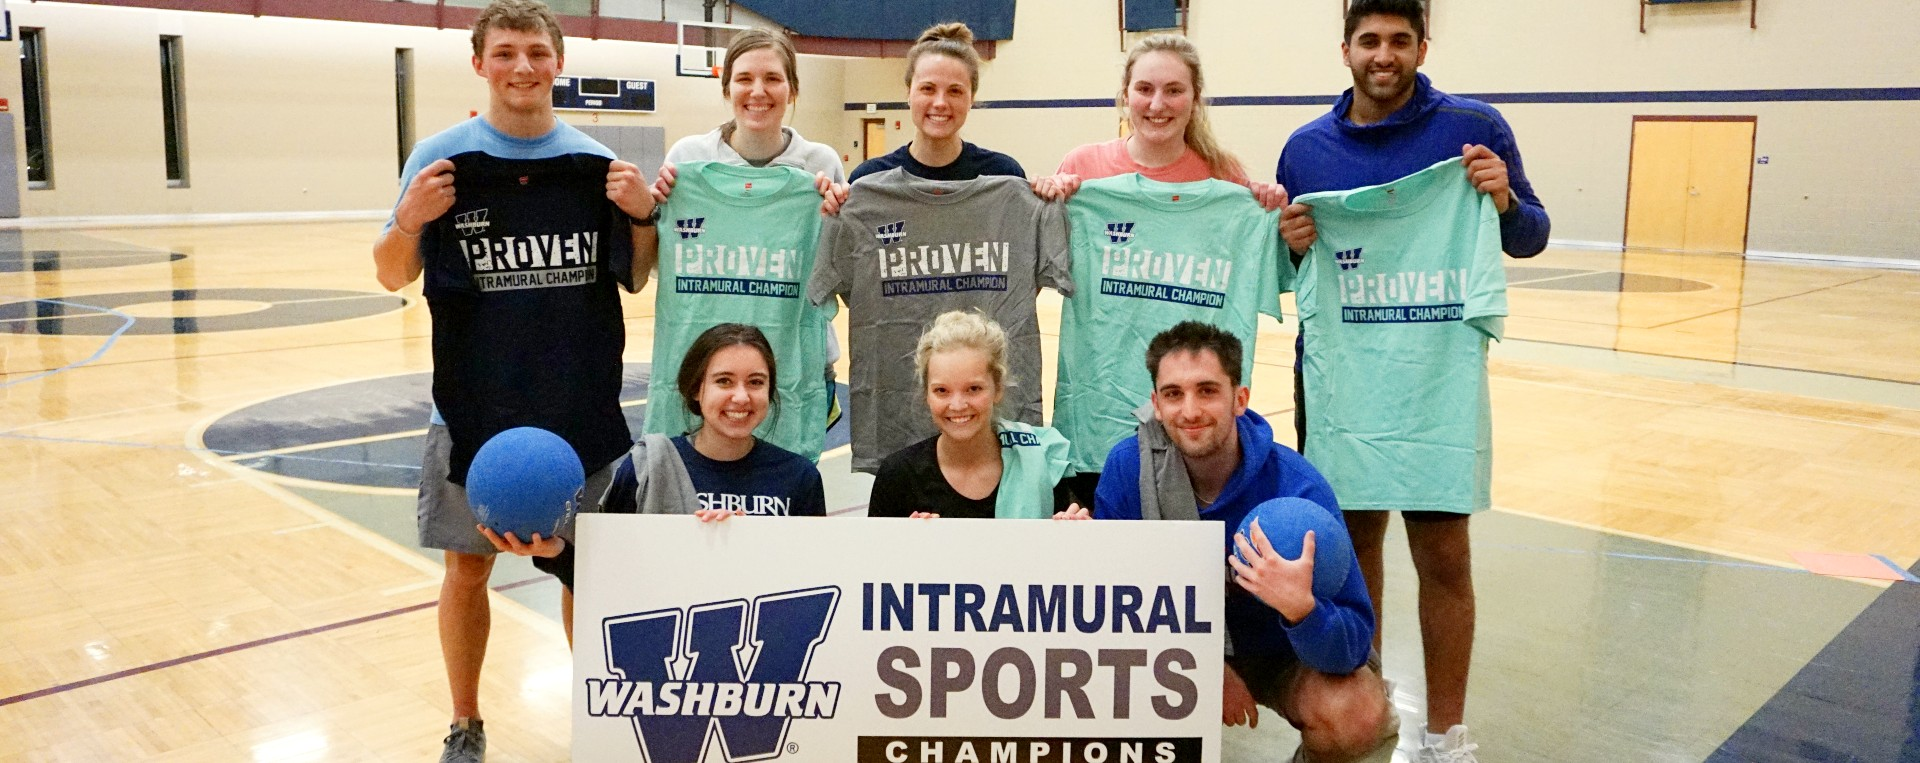 intramural champions